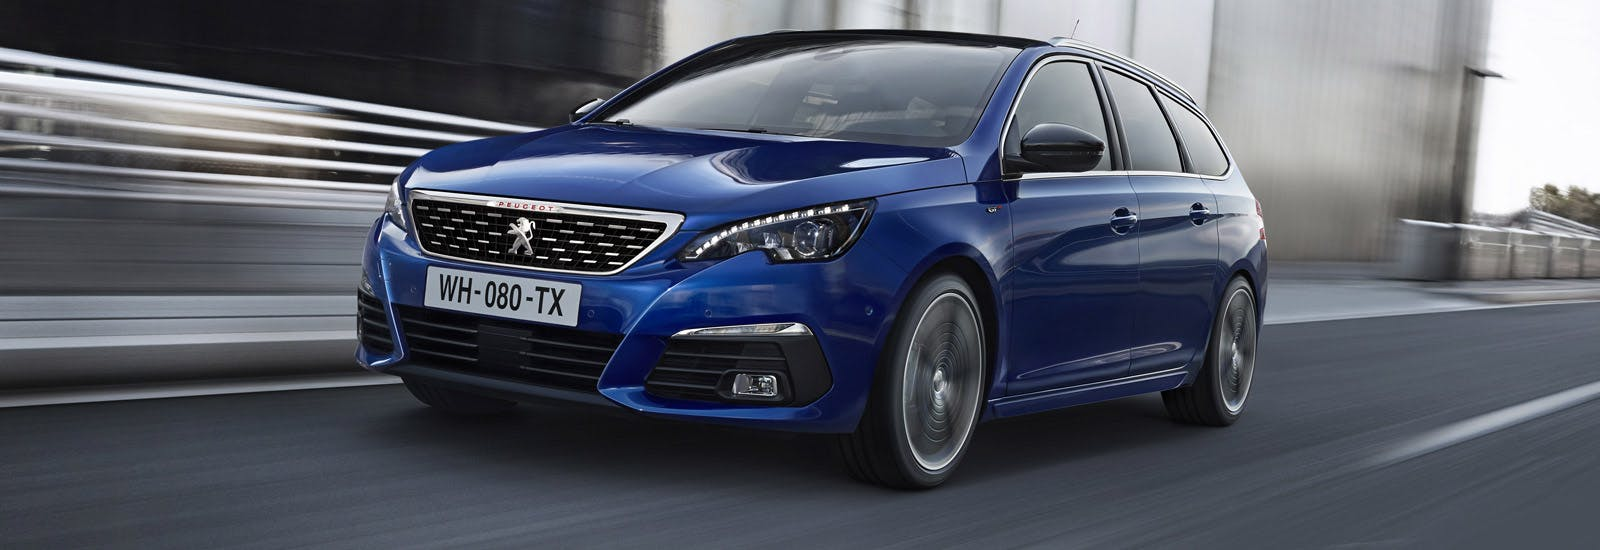 2017 peugeot 308 facelift price specs and release date carwow. Black Bedroom Furniture Sets. Home Design Ideas